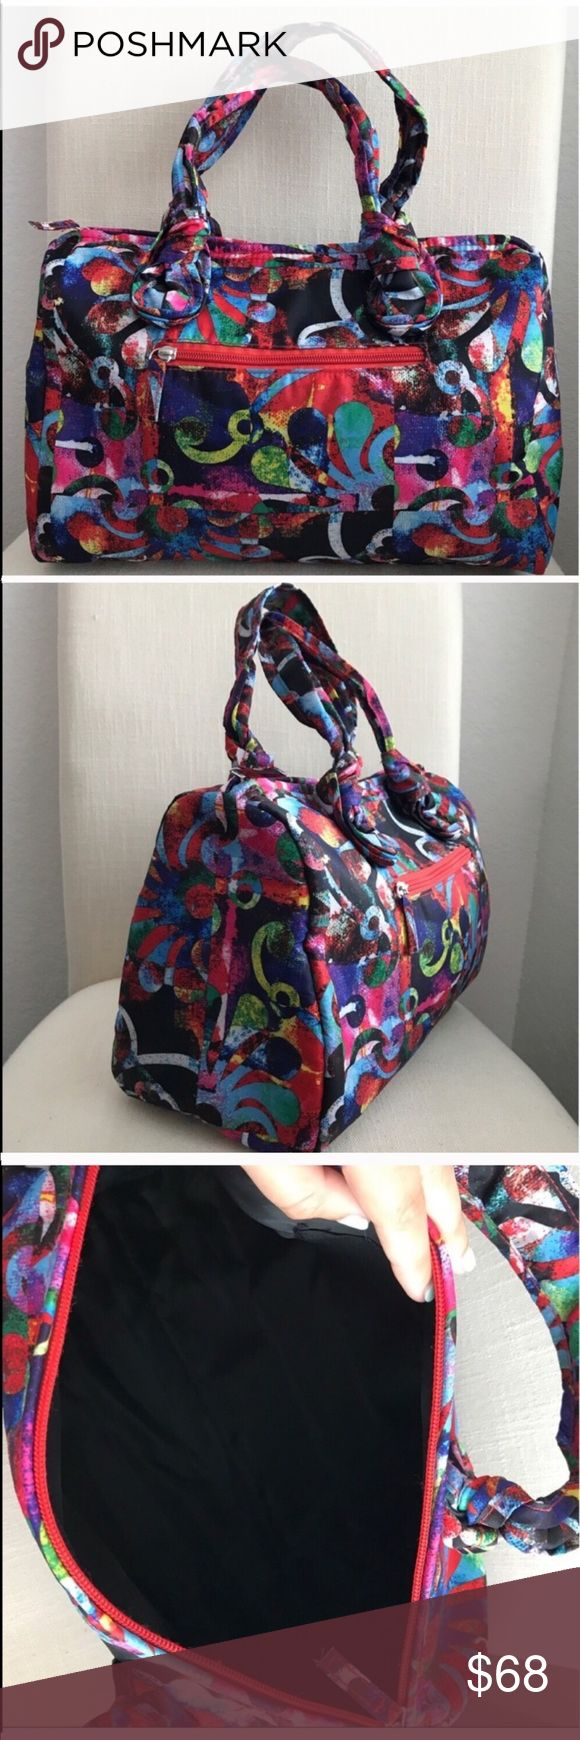 """MEXICAN COLORFUL SATCHEL HANDBAG 💗Condition: New in original package. No flaws, no rips, holes or stains. Nylon fabric. Lined inside. Inside pocket. Outside pocket with zipper. All zippers functionals. Packable and perfect for traveling. Measurements: 13""""x10.5""""x6.5 💗Smoke free home/Pet hair free 💗No trades, No returns. No modeling  💗ALL ITEMS ARE OWNED BY ME. NOT FROM THRIFT STORES 💗All transactions video recorded to ensure quality.  💗Ask all questions before buying kikisflorida Bags…"""